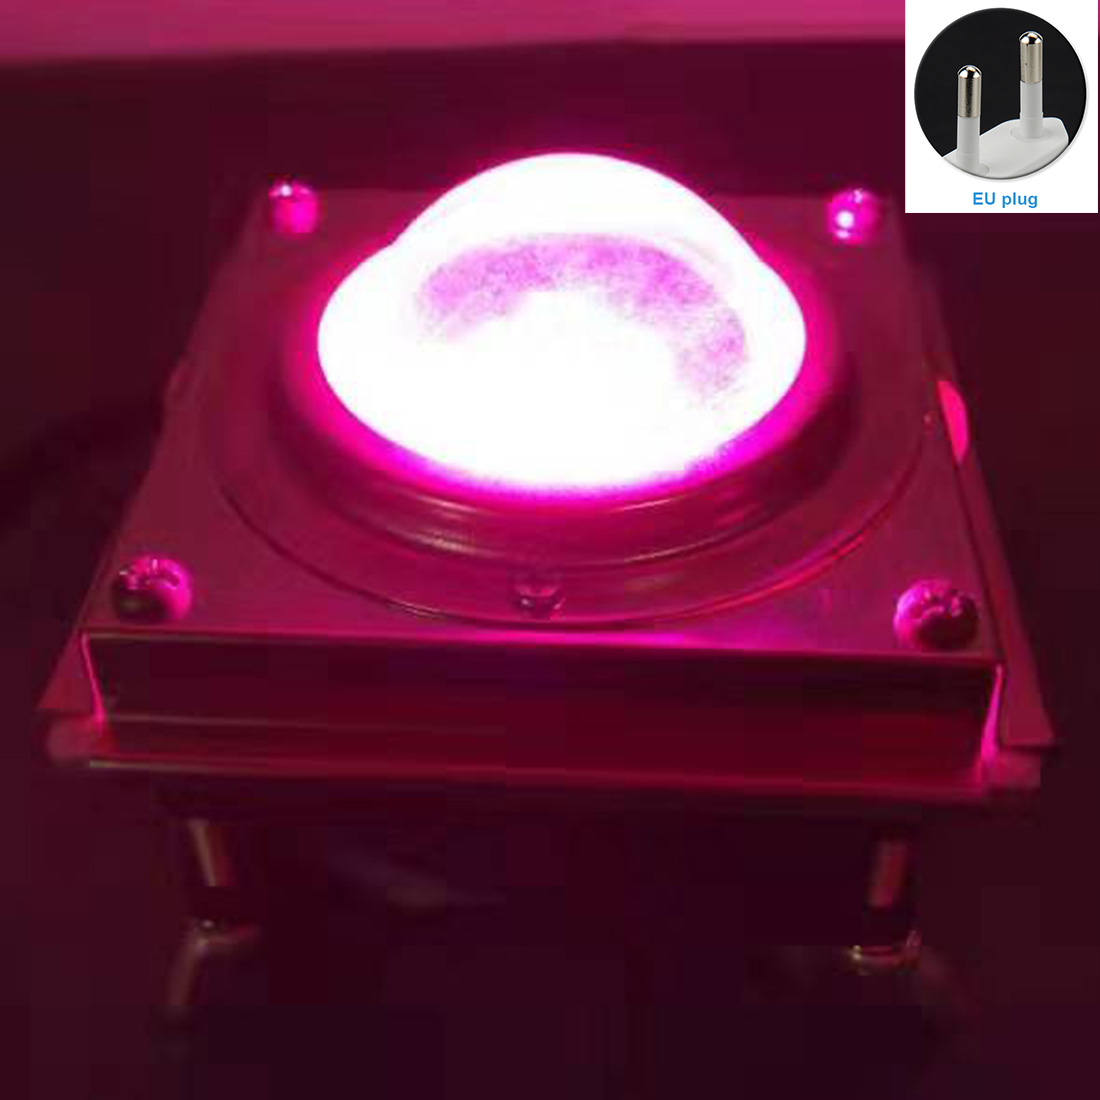 Plants Yard Grow Light Garden Bonsai Full  LED Greenhouse Flower 60W Cooling Fan Aquarium Professional Hydroponic